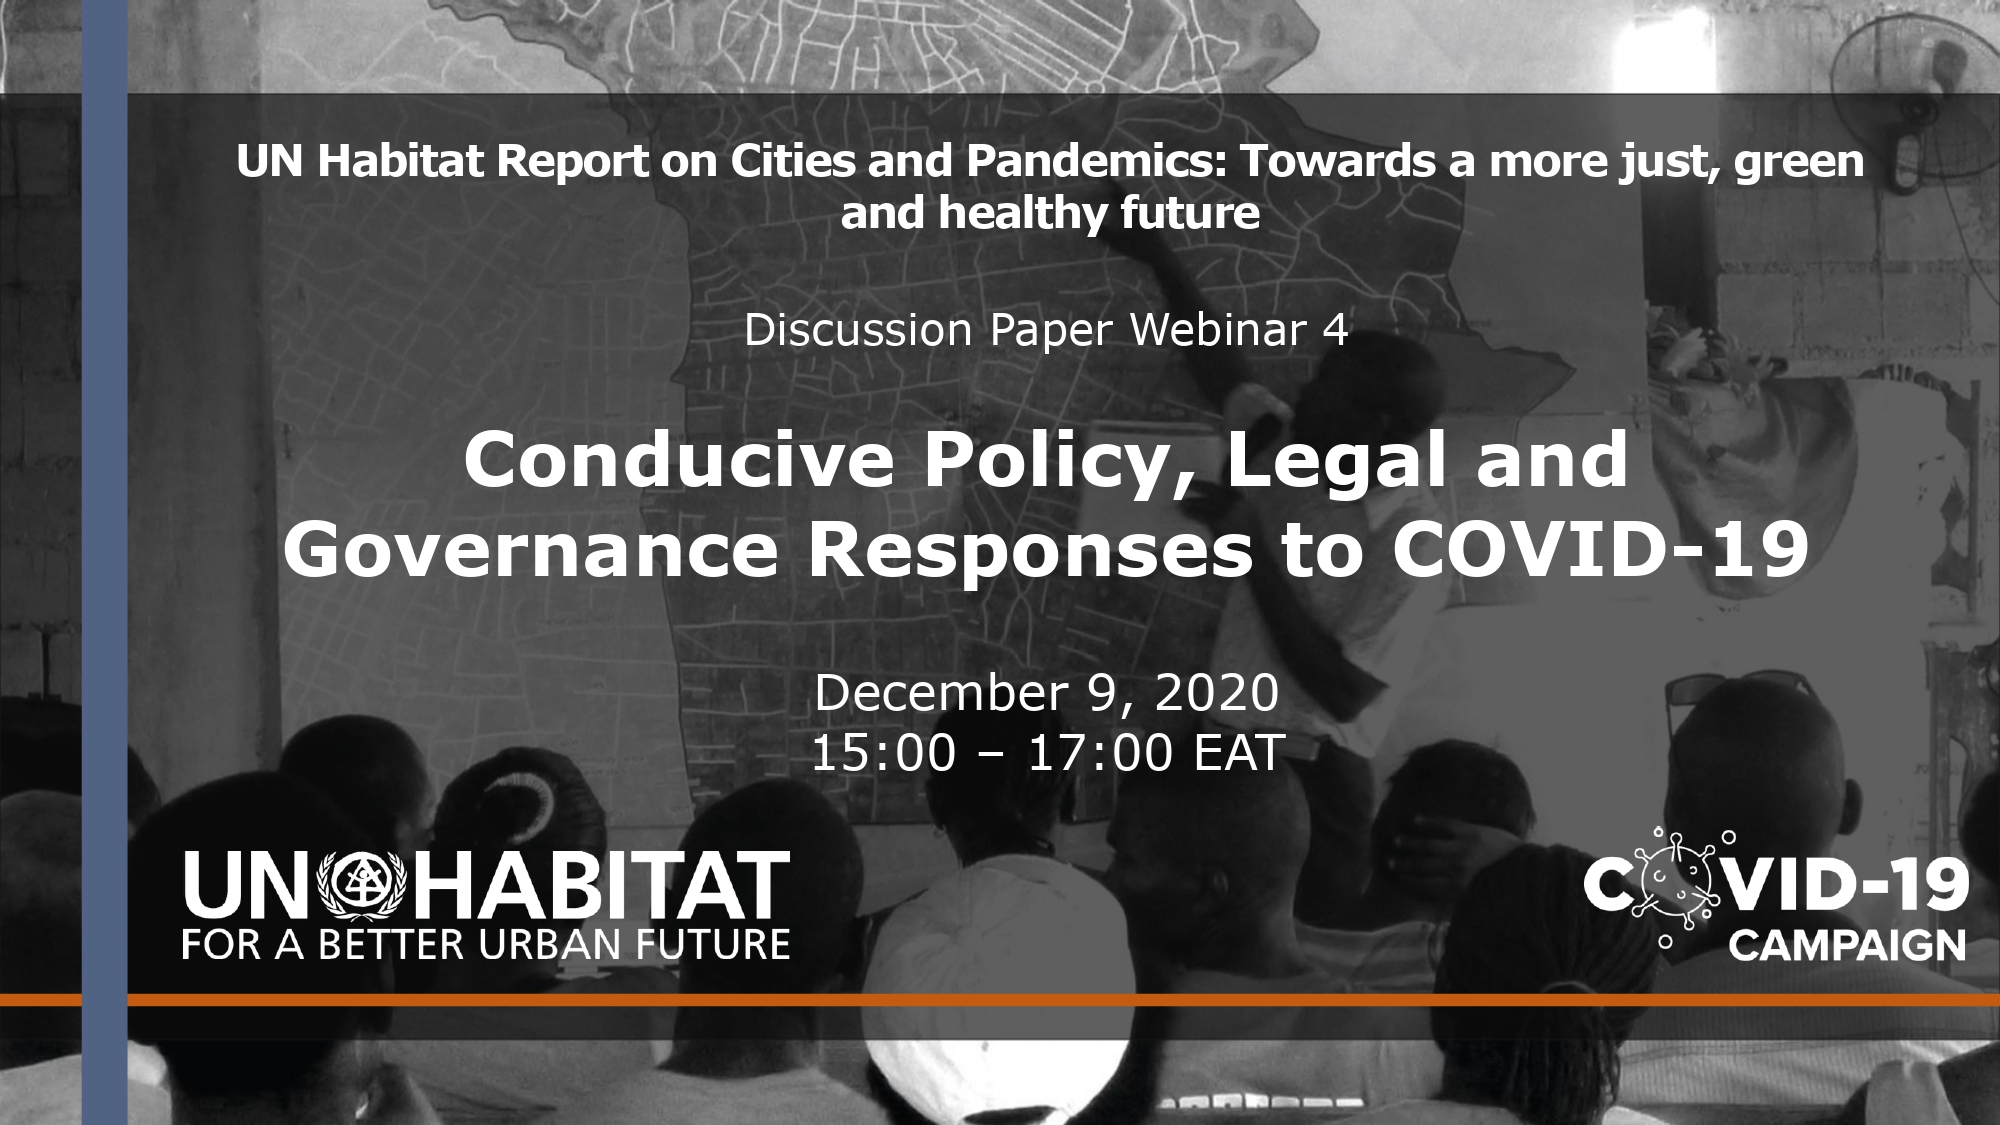 Discussion paper on Policy, Legal and Governance Responses to COVID-19